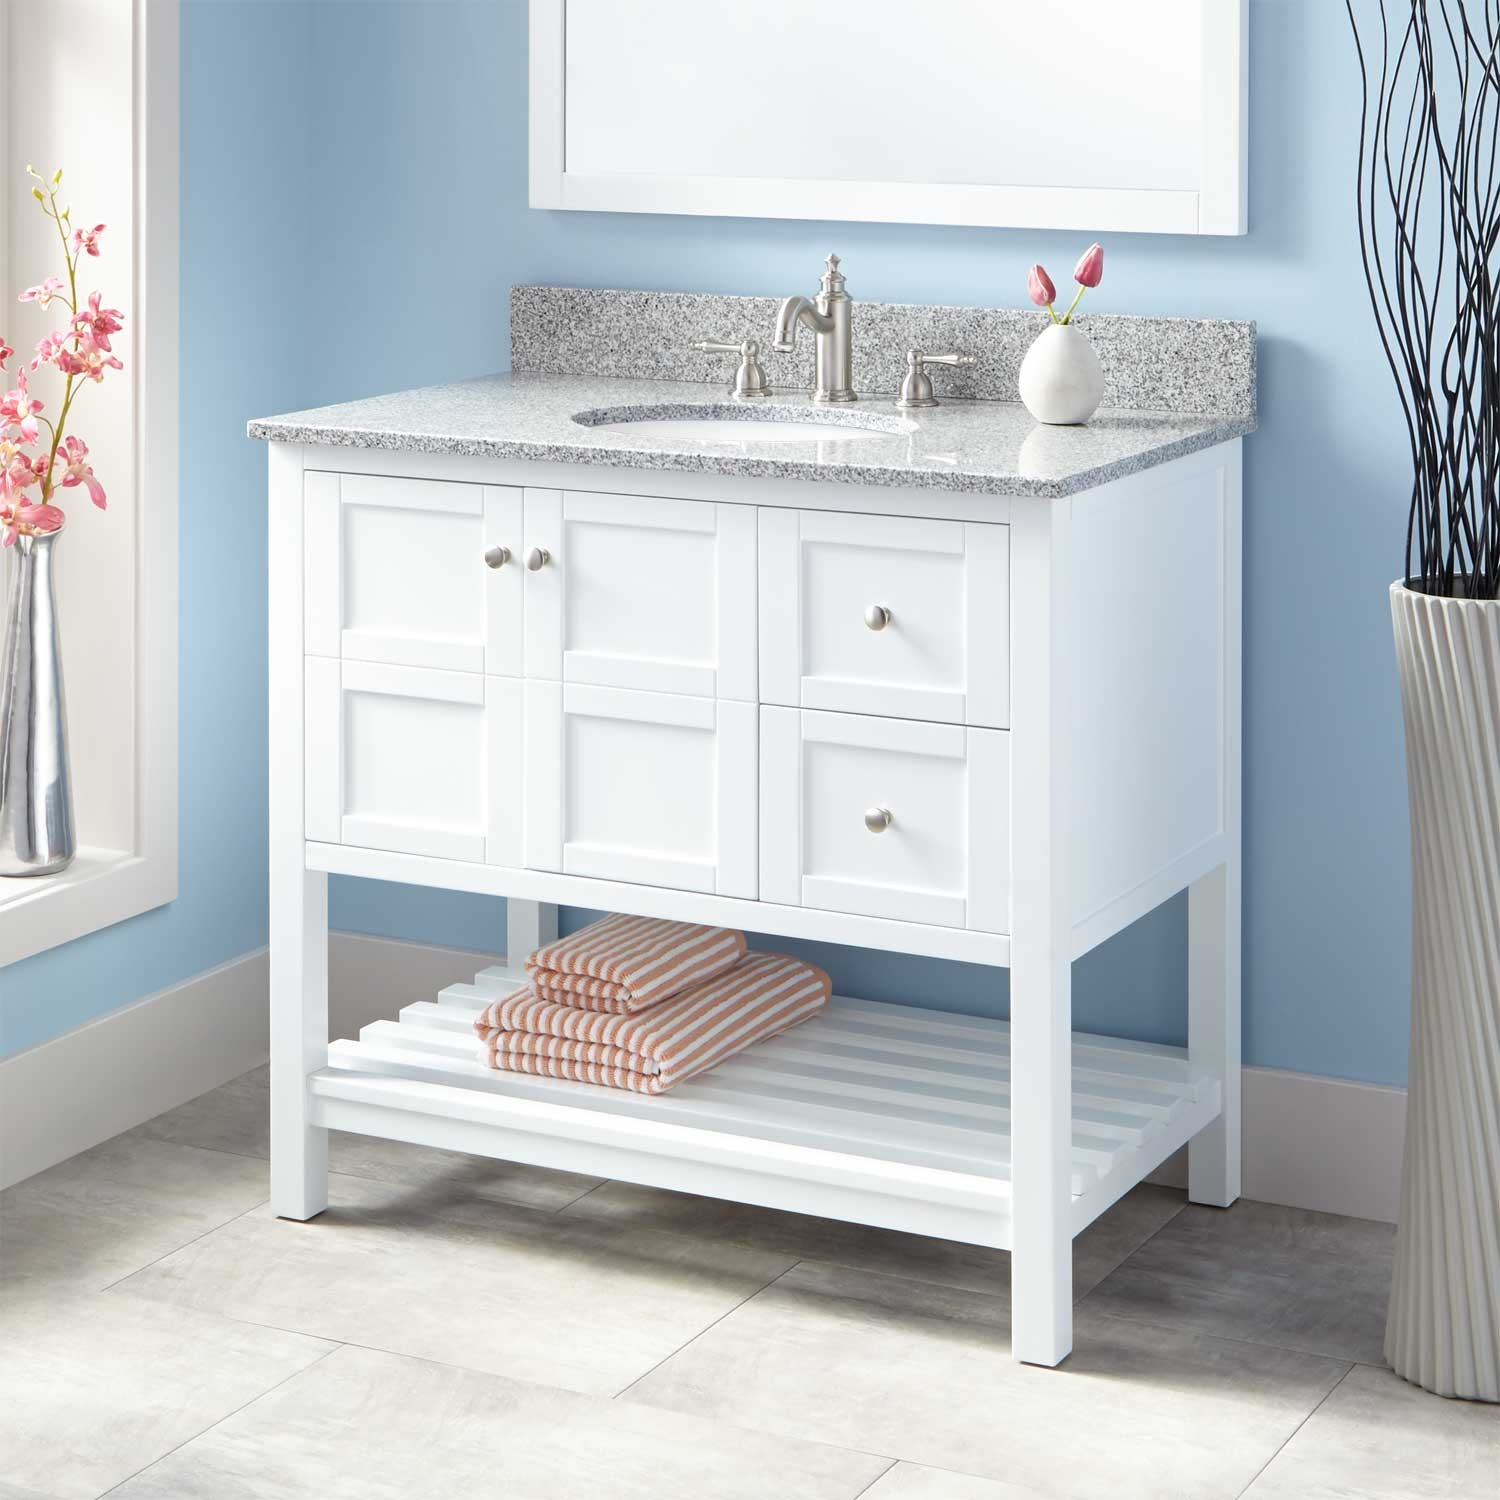 Perfect White Bathroom Vanity And Storage Cabinet Ideas